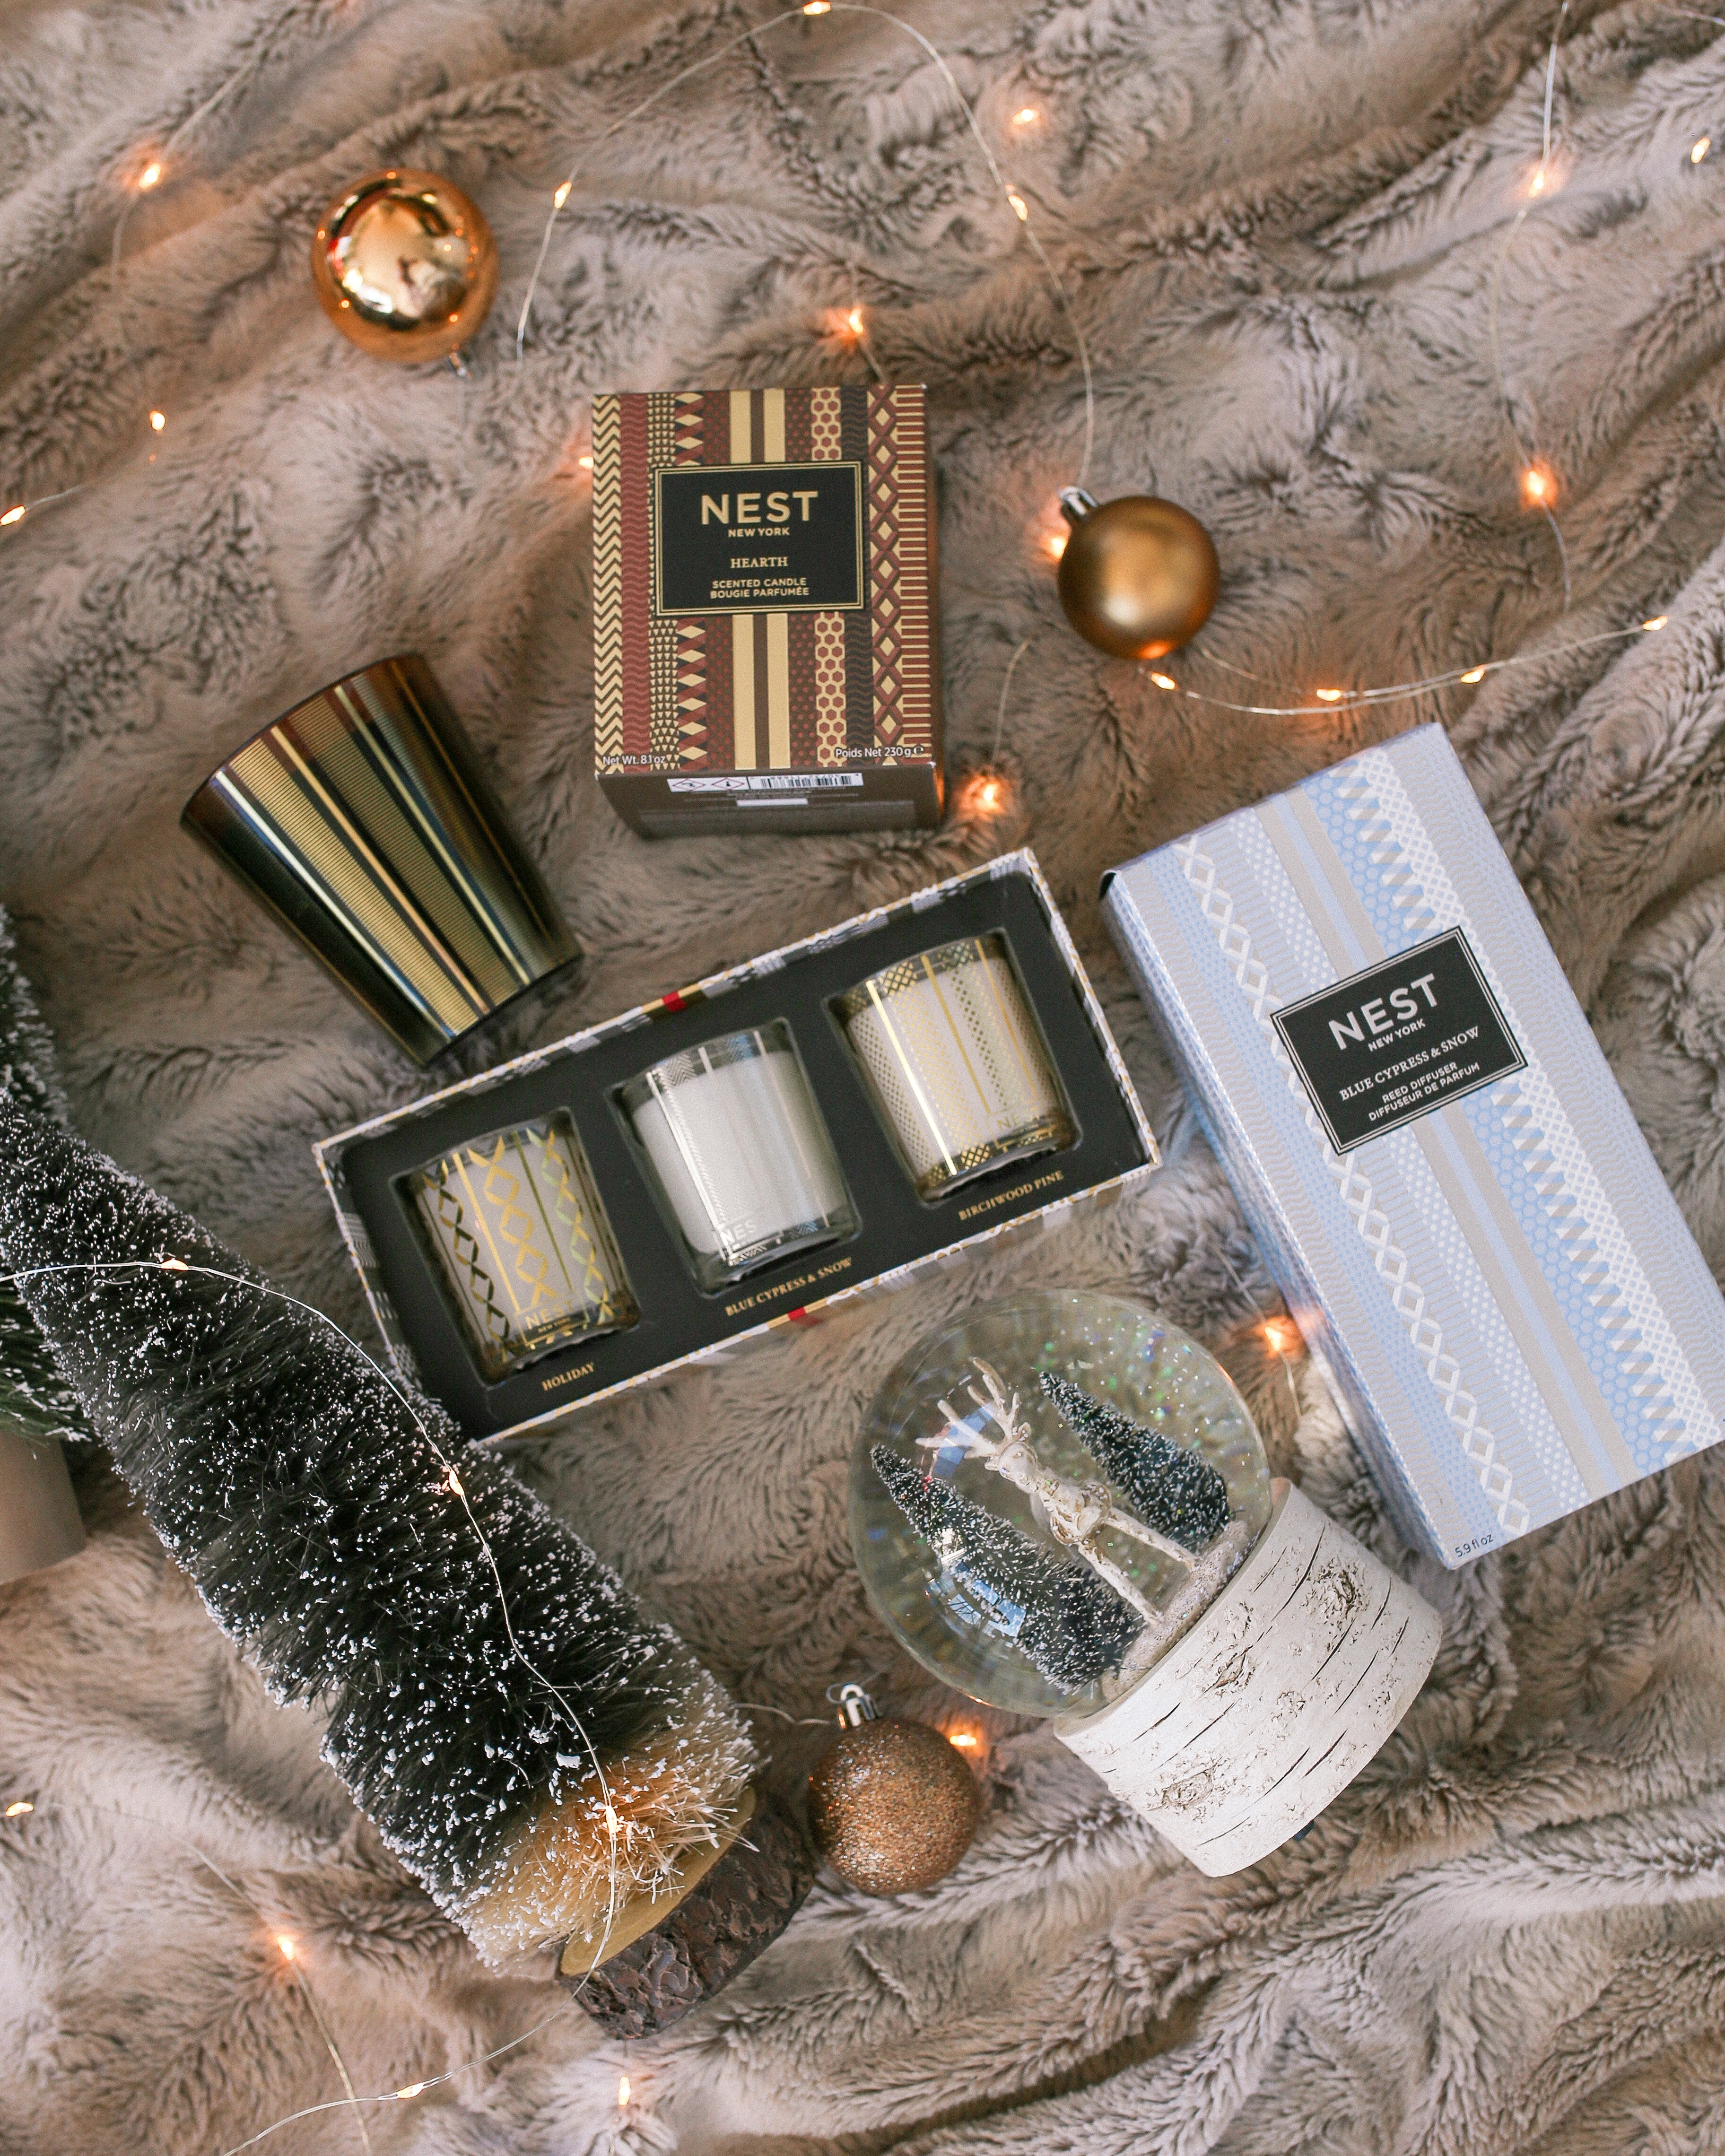 Nest Fragrances Holiday Gift Sets and Scents